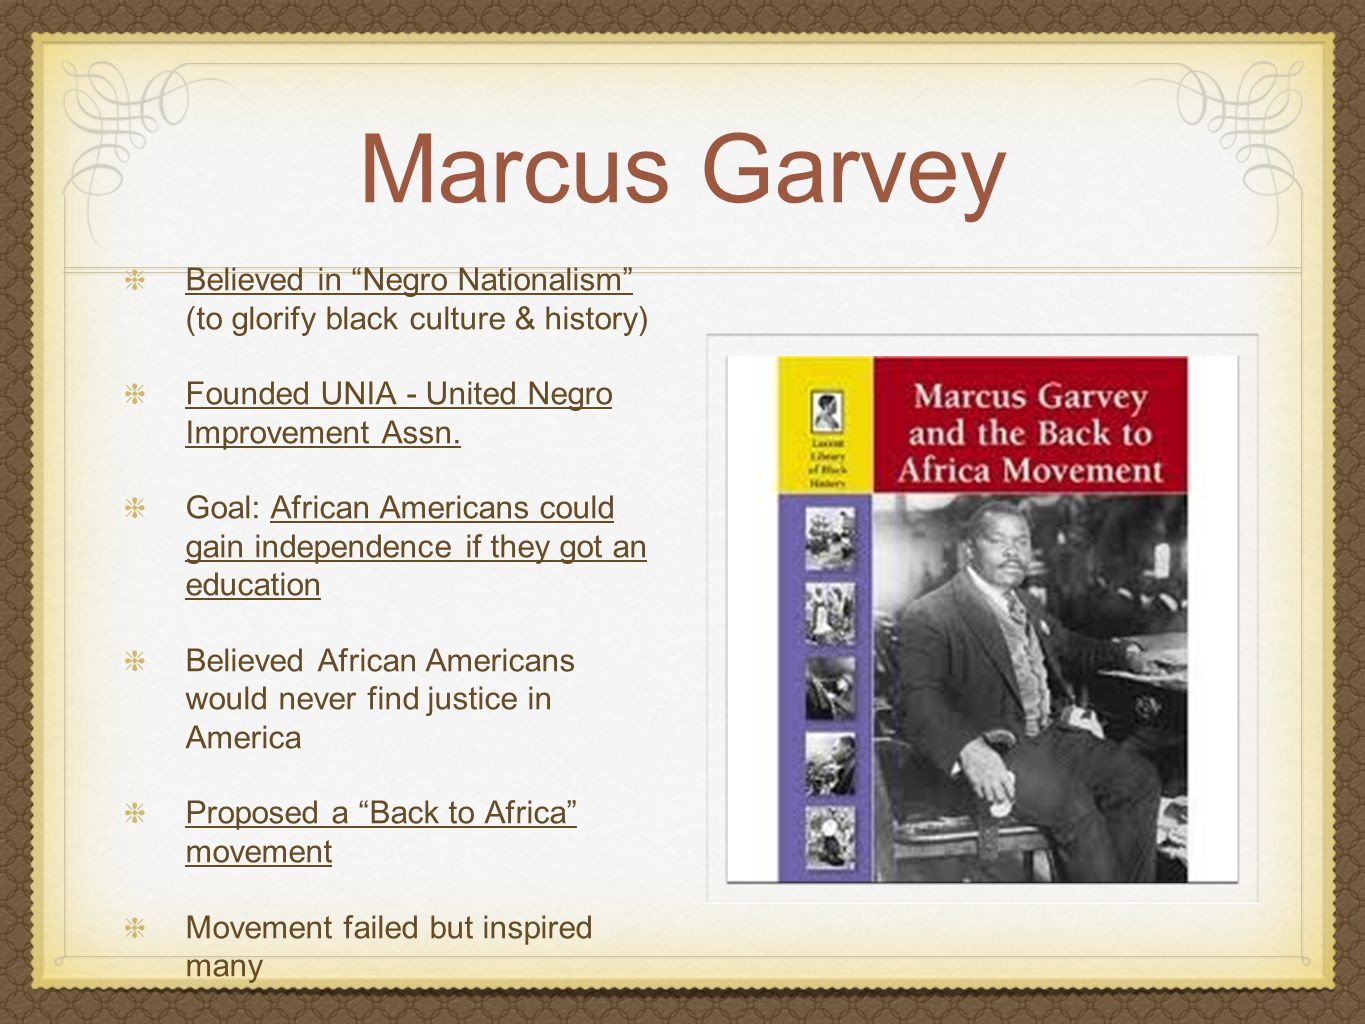 Marcus Garvey Believed in Negro Nationalism (to glorify black culture & history) Founded UNIA - United Negro Improvement Assn.